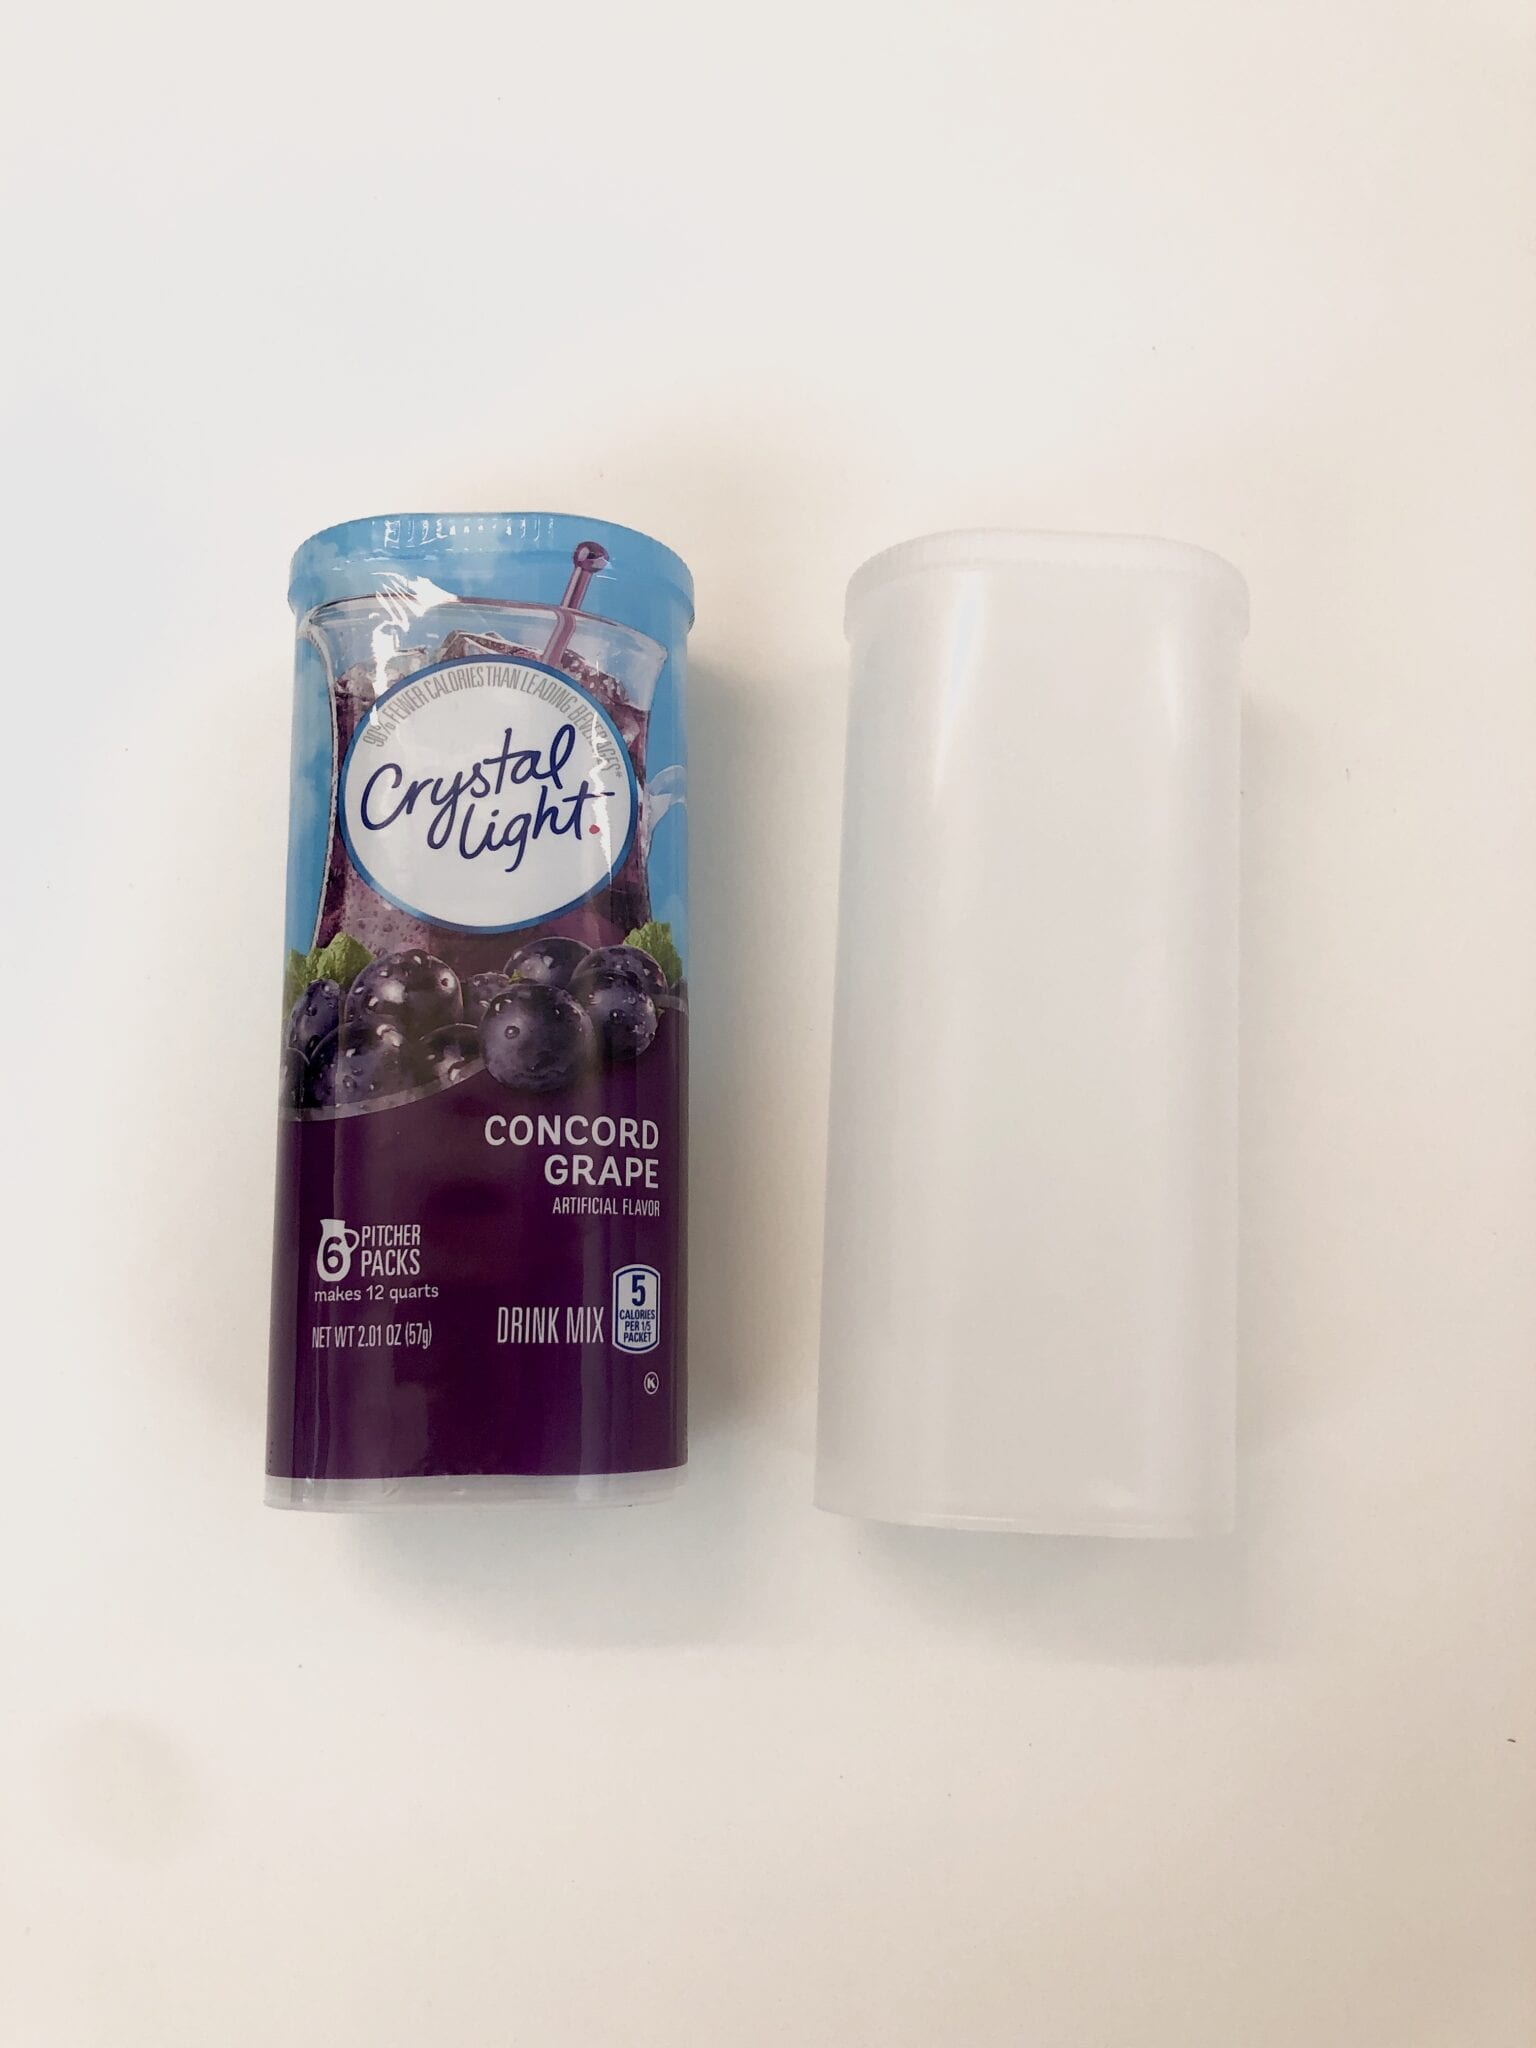 Two Crystal Light containers next to each other.